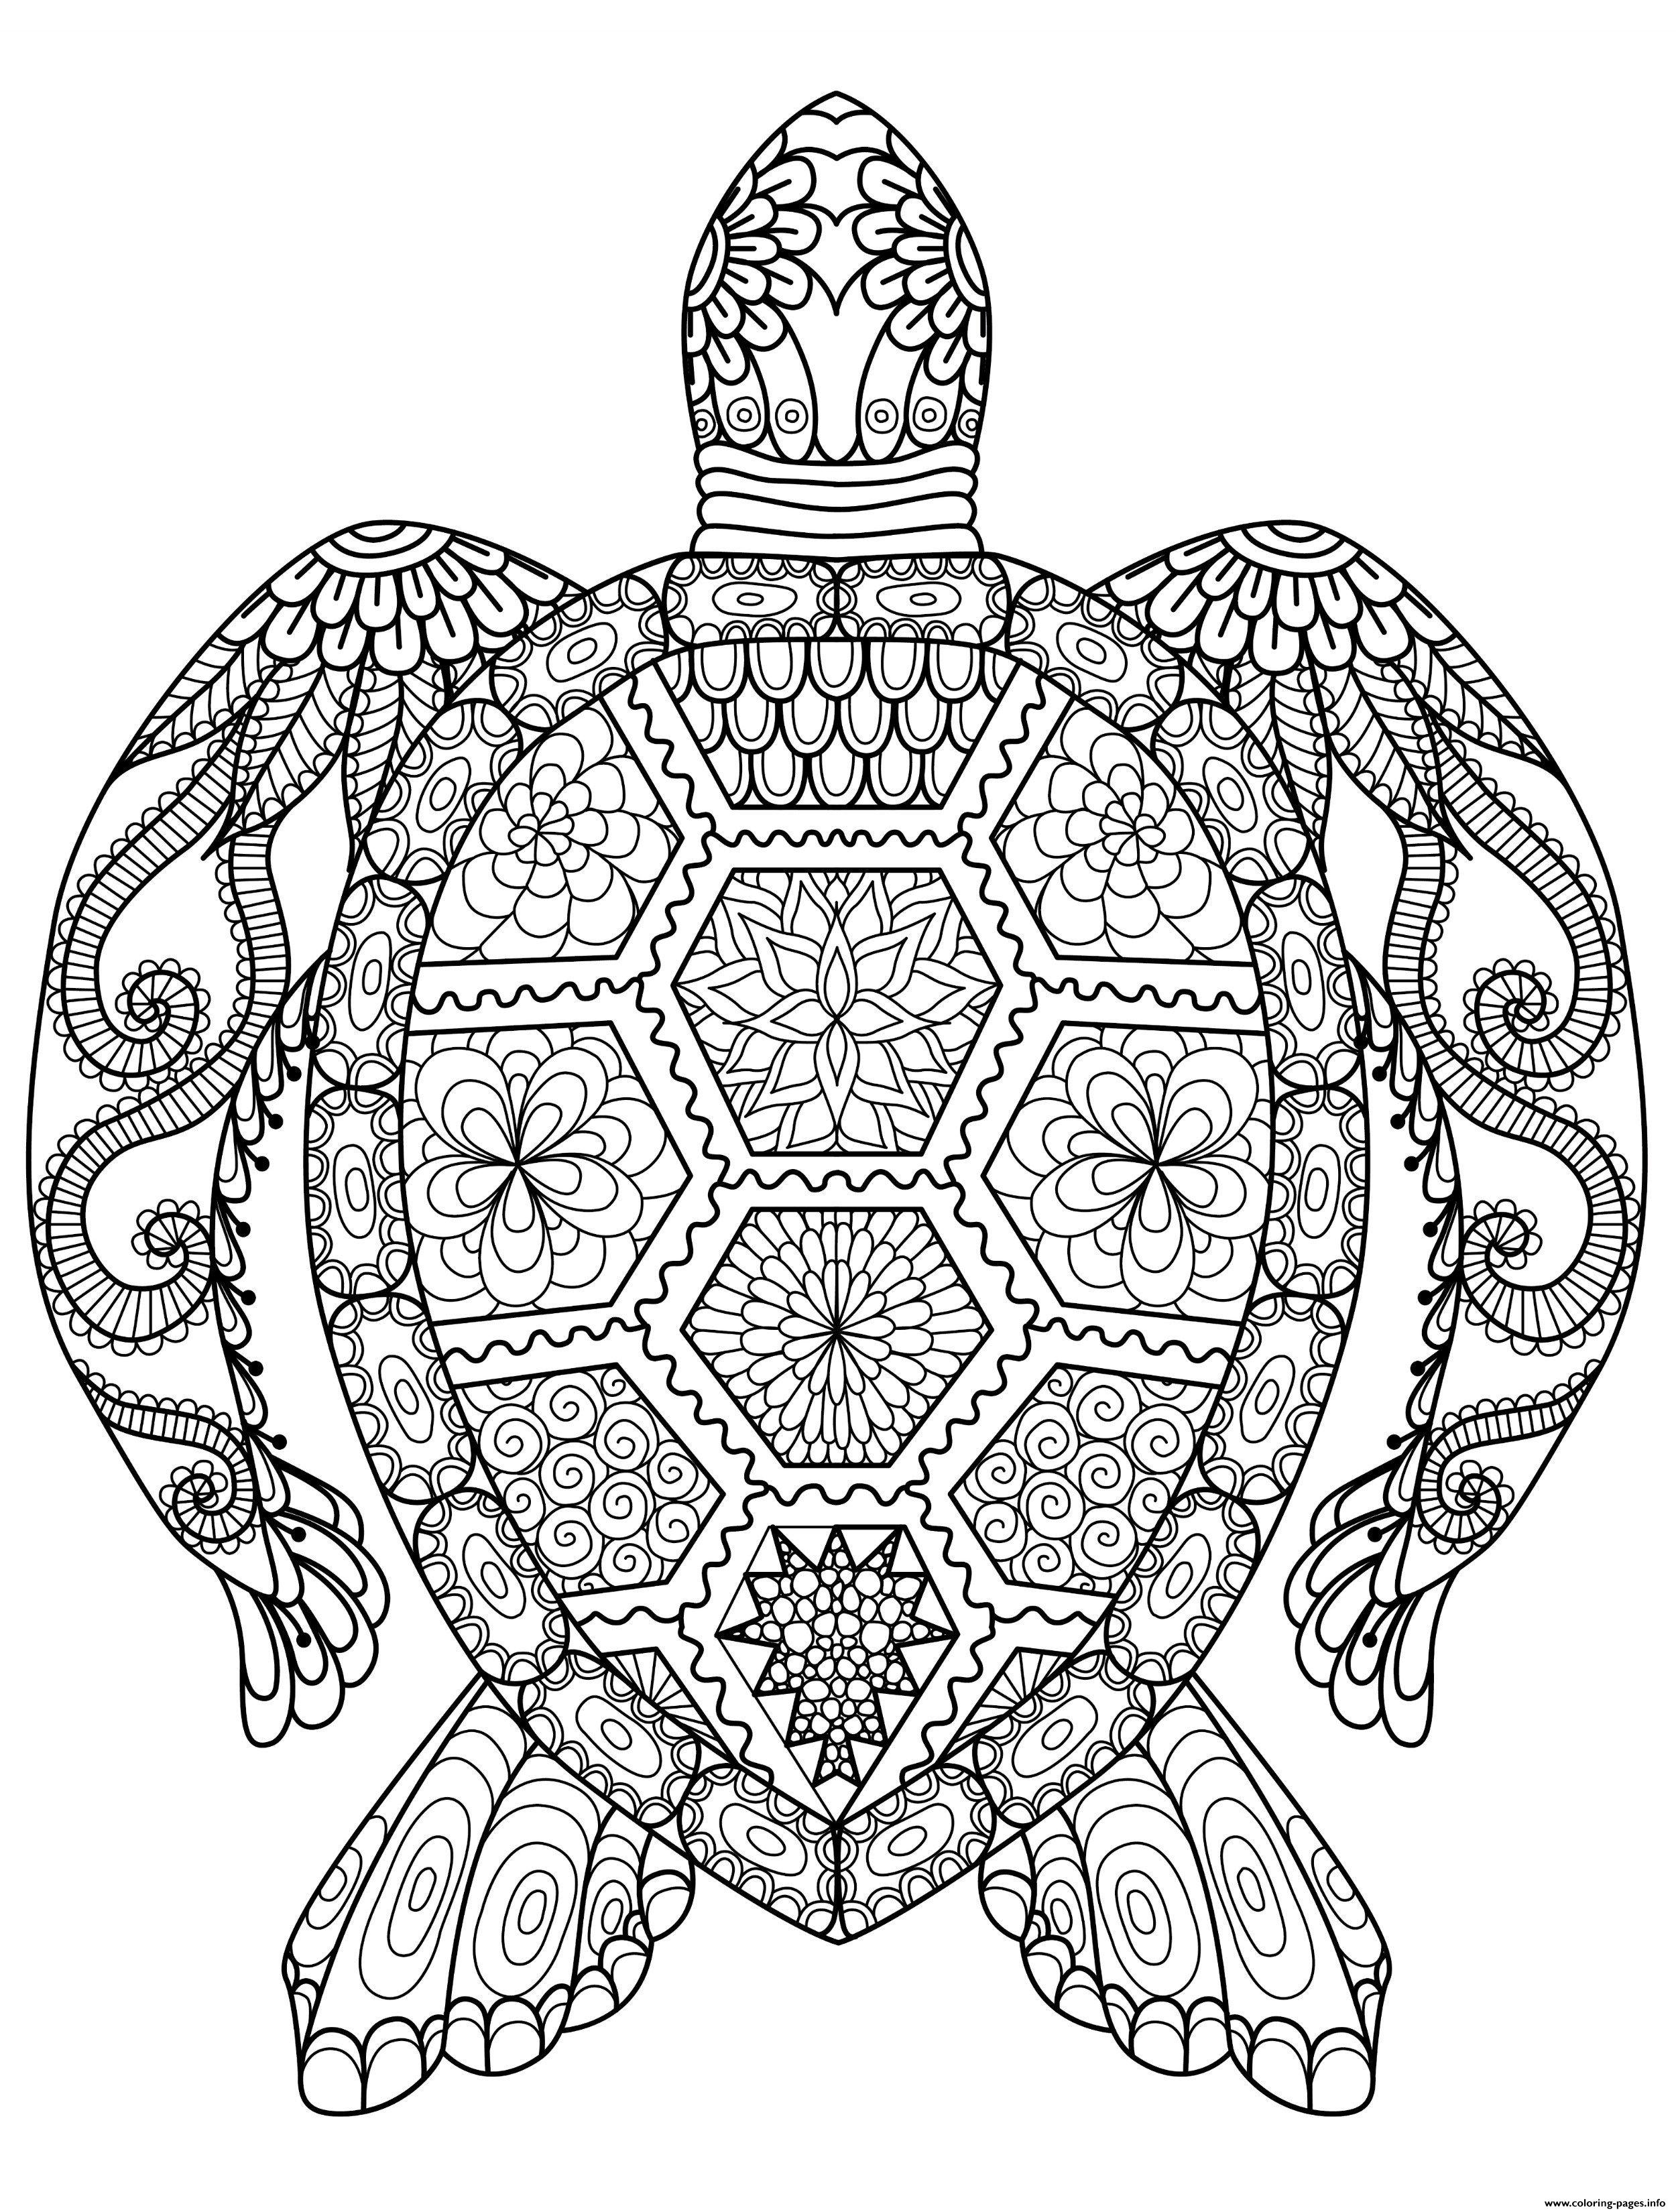 zentangle coloring pages free printable zentangle coloring pages for adults coloring page free zentangle coloring printable pages